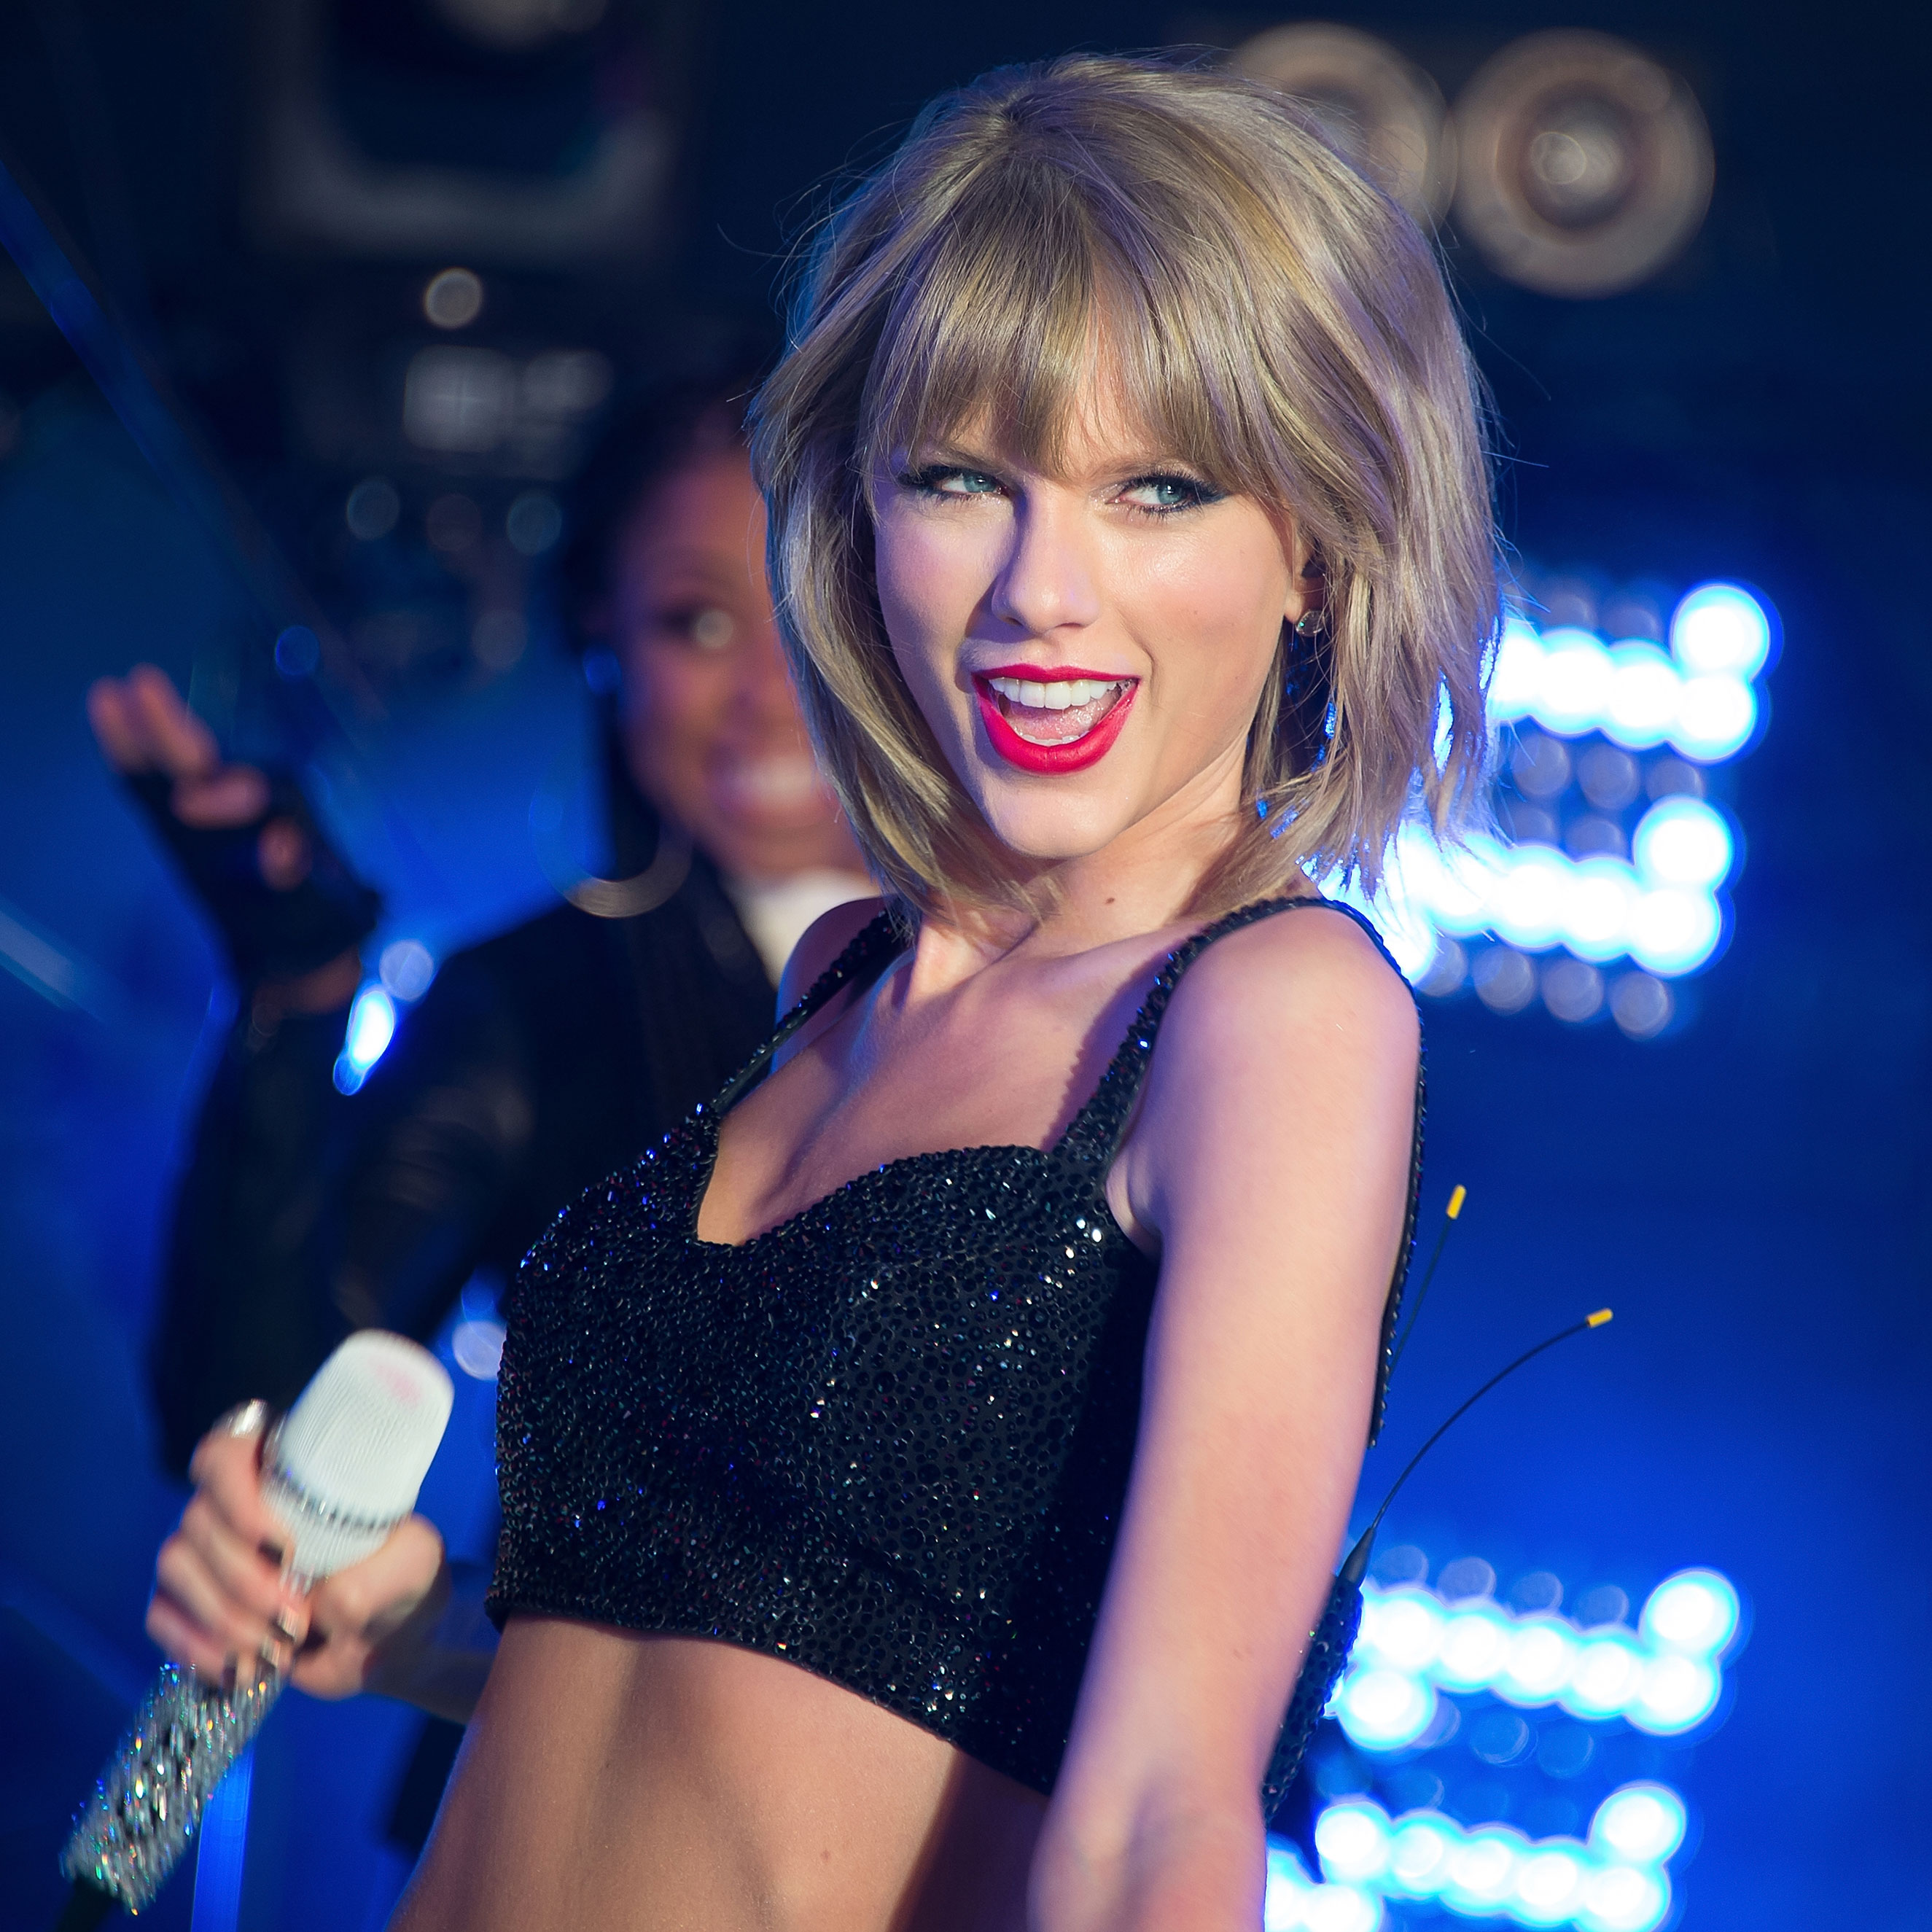 Taylor Swift performs during New Year's Eve 2015 in Times Square at Times Square on Dec. 31, 2014 in New York City.